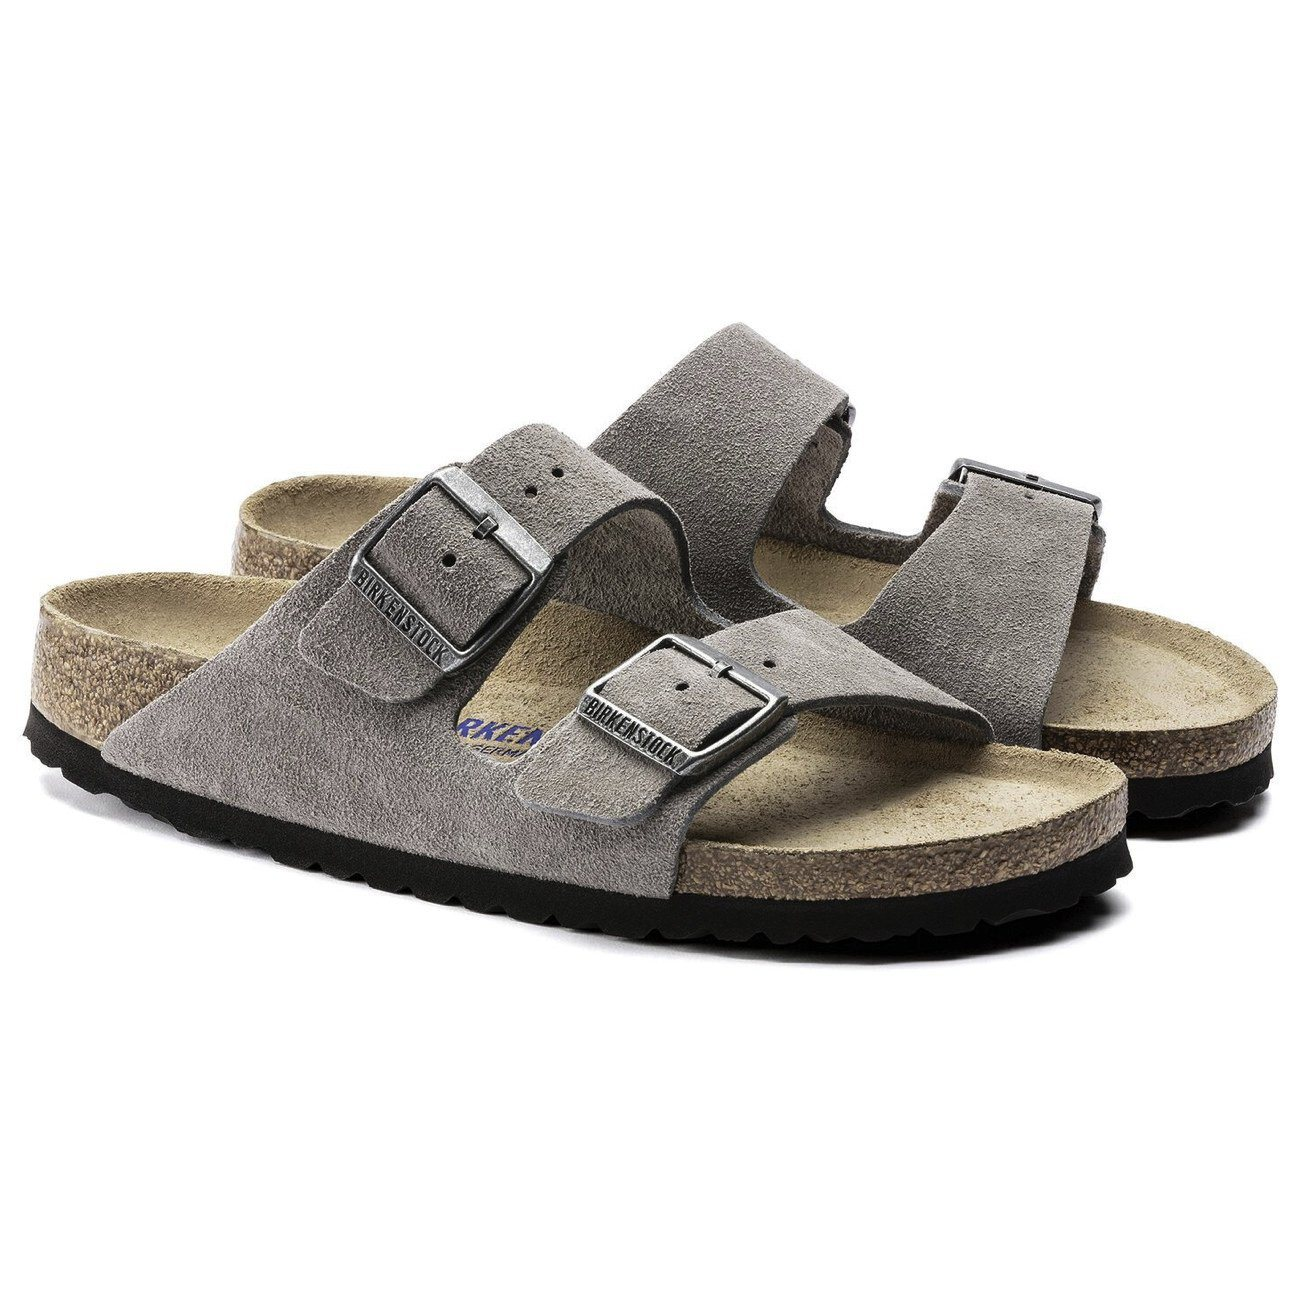 Birkenstock Seasonal, Arizona, Suede Leather, Narrow Fit, Soft Footbed, Stone Coin Sandals Birkenstock Seasonal Stone Coin 35